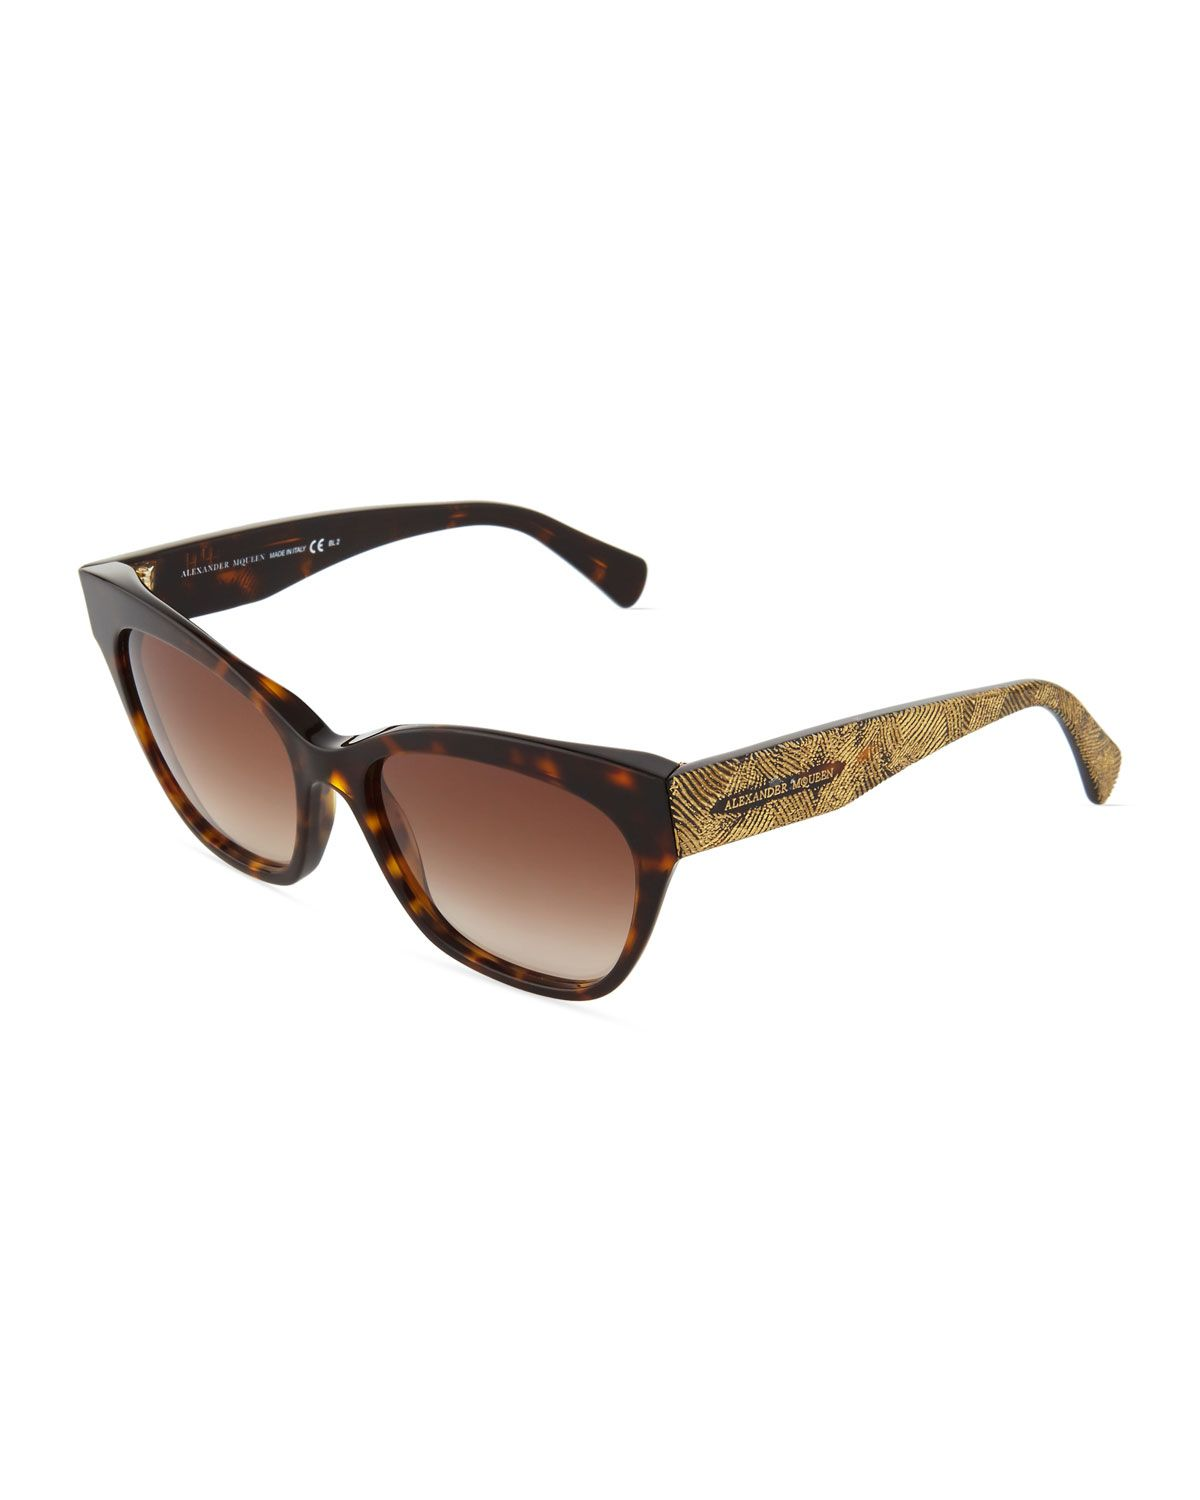 Alexander McQueen Engraved-Arm Cat-Eye Sunglasses, Havana/Gold